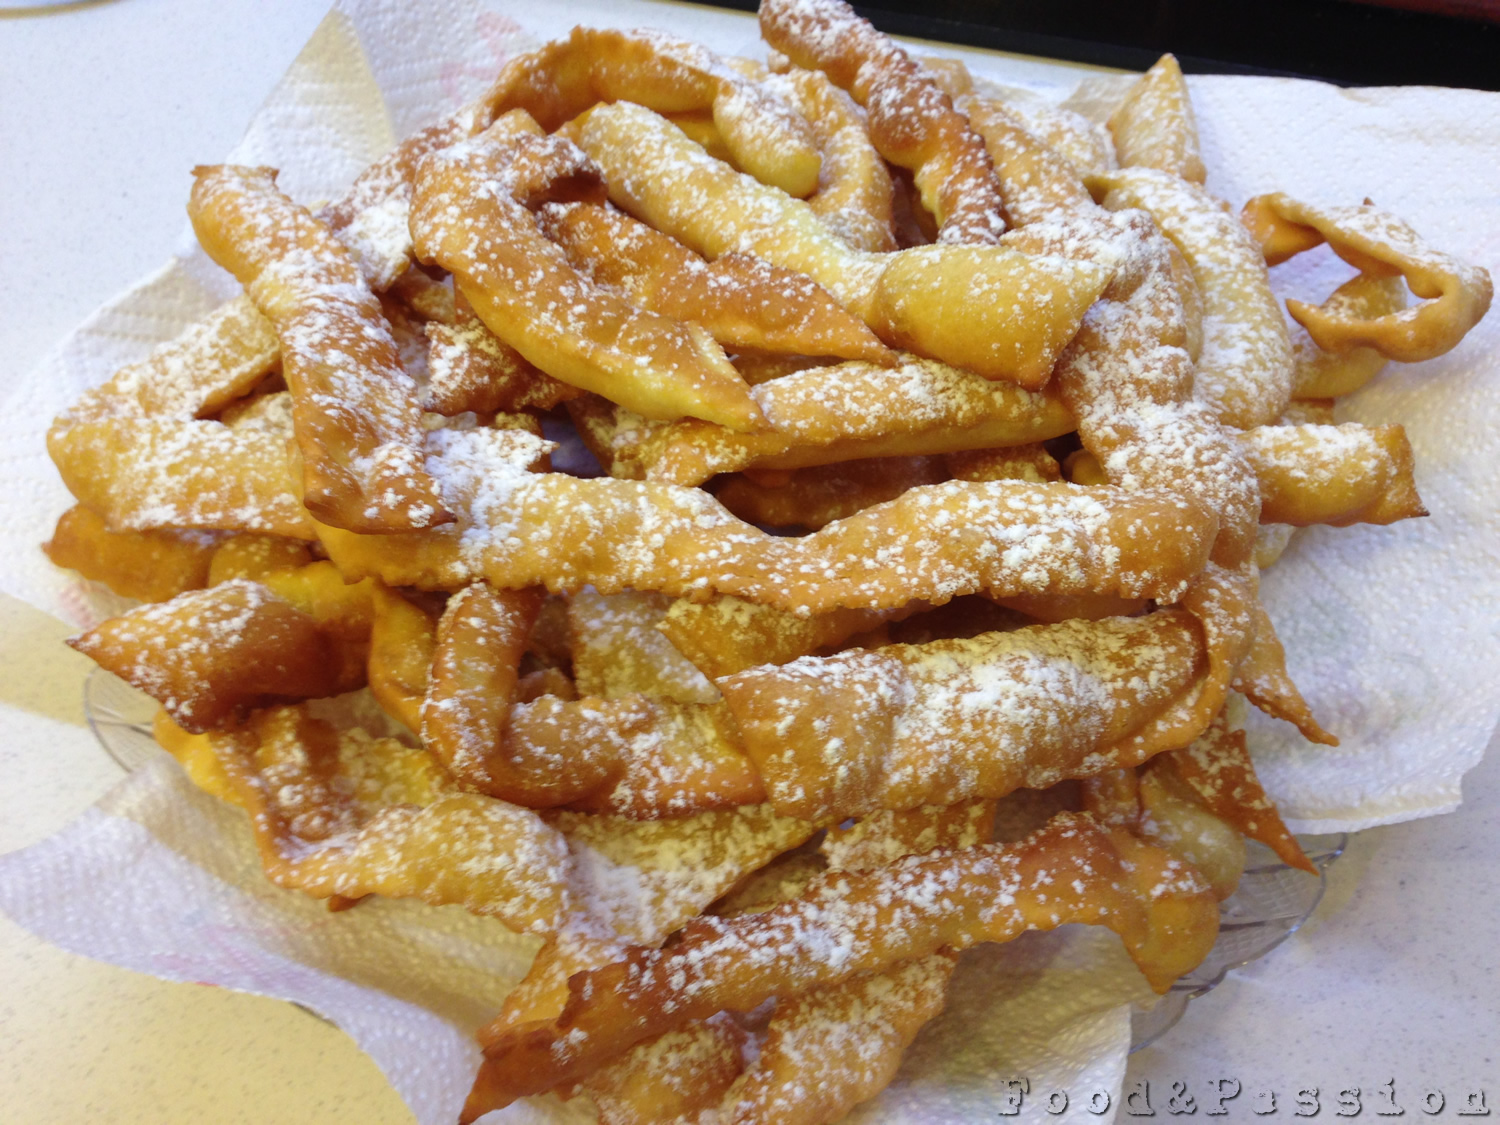 Frappe, chiacchiere o bugie 1